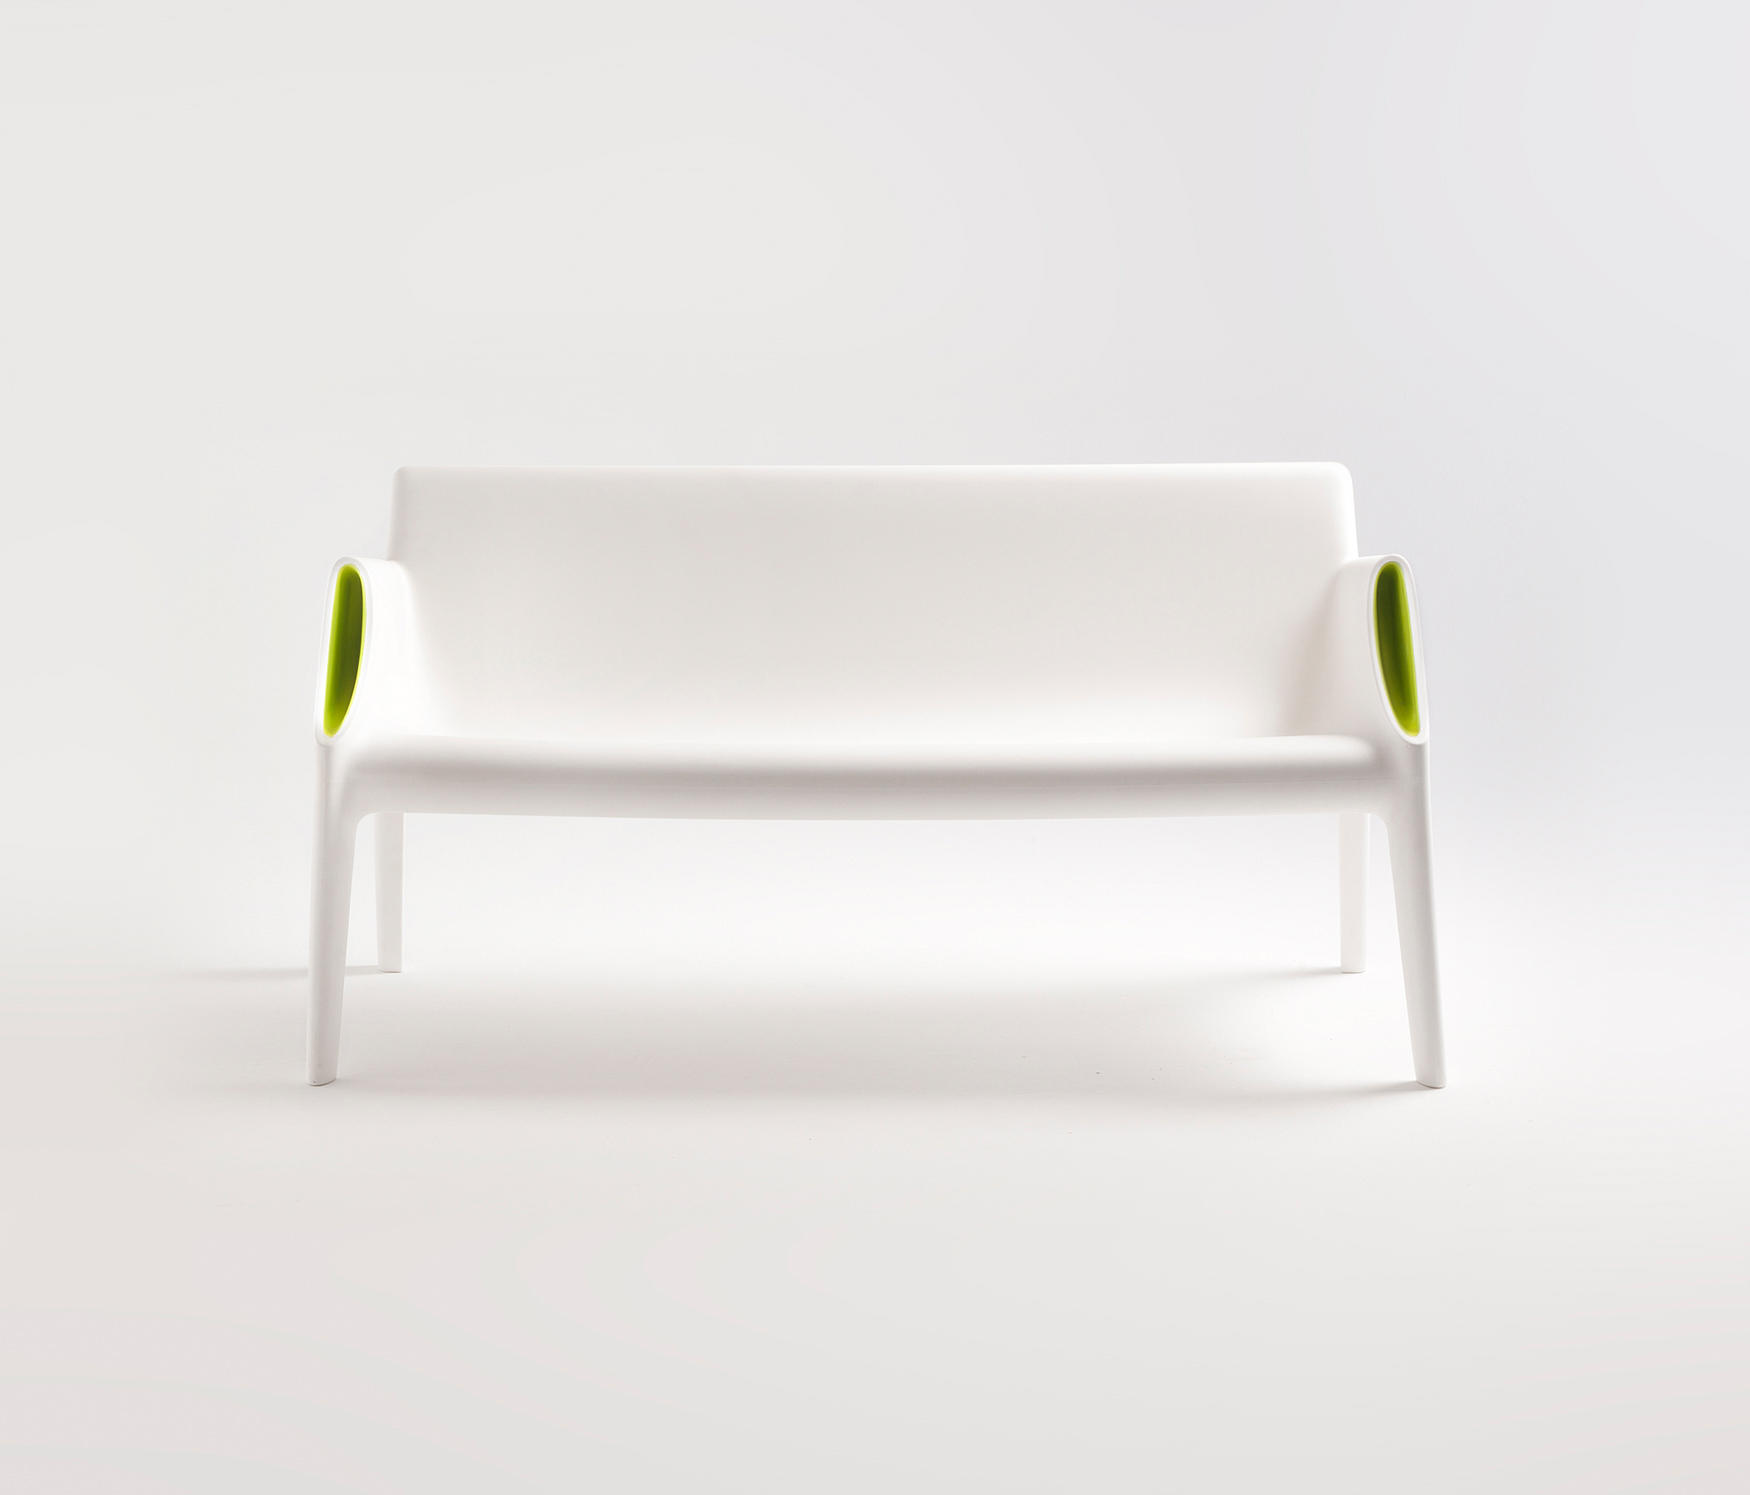 MAGIC HOLE - Sitzbänke von Kartell | Architonic